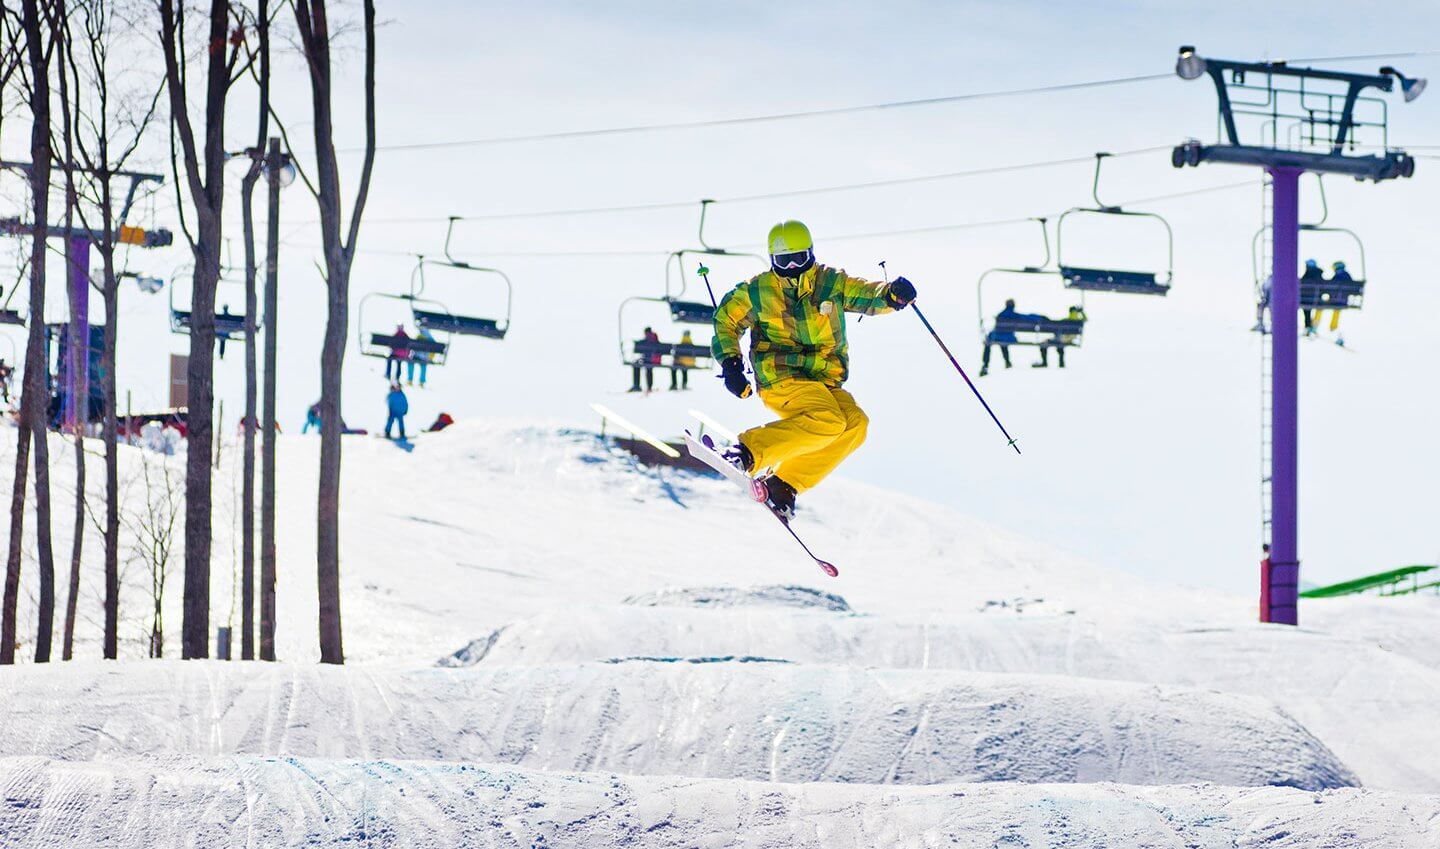 Colorful skier hitting a jump in the Monster Terrain Park